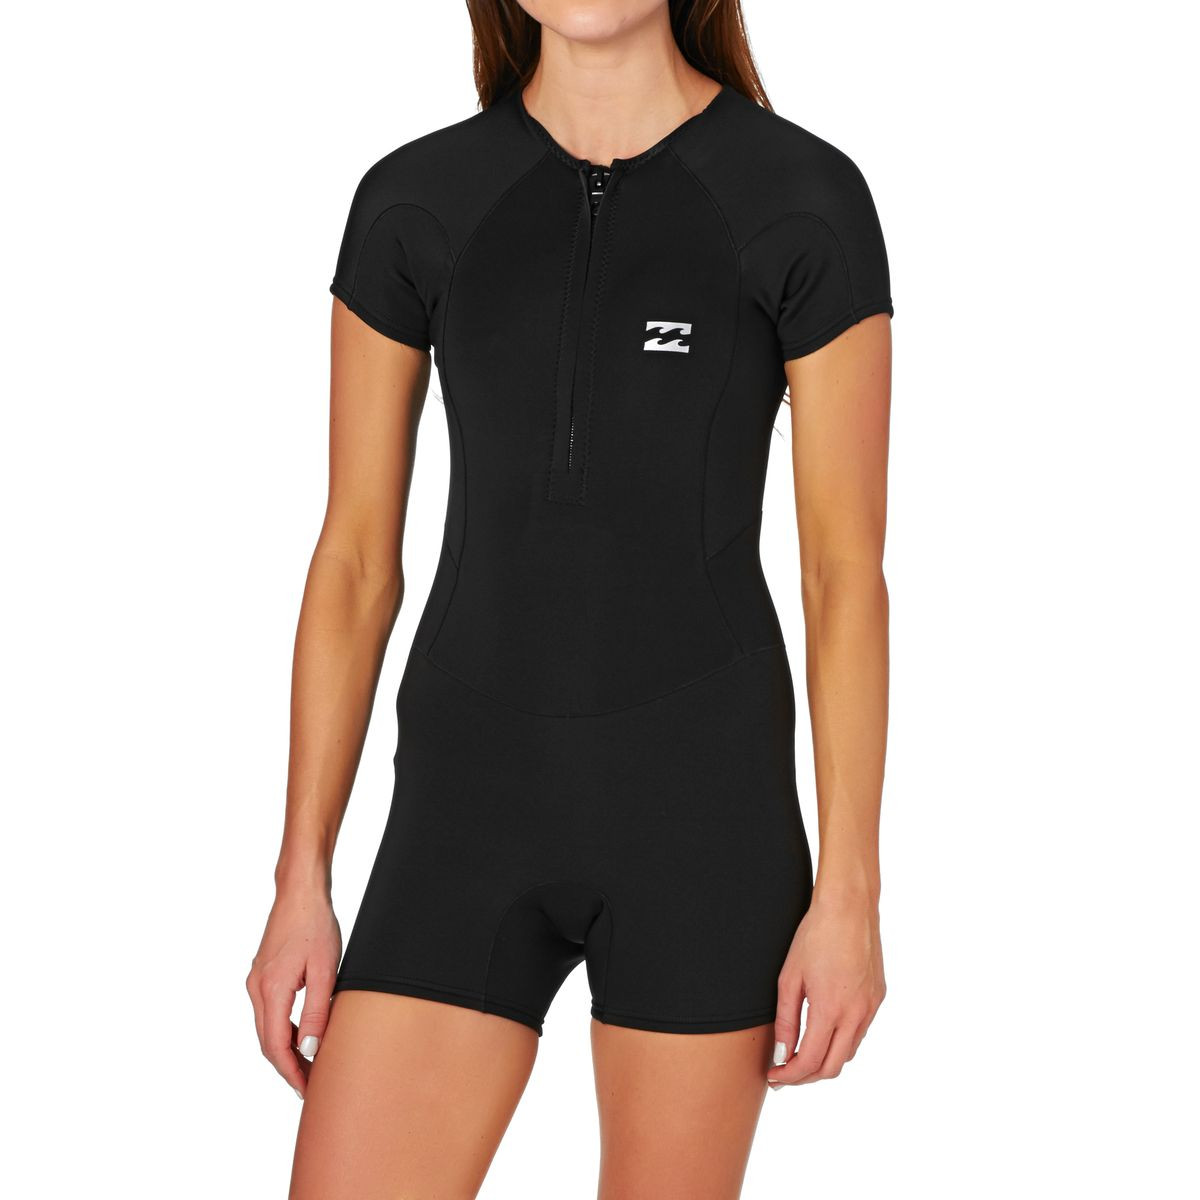 82a649a4cf Billabong Womens Synergy 1mm 2017 Front Zip Short Sleeve Shorty Wetsuit -  Black